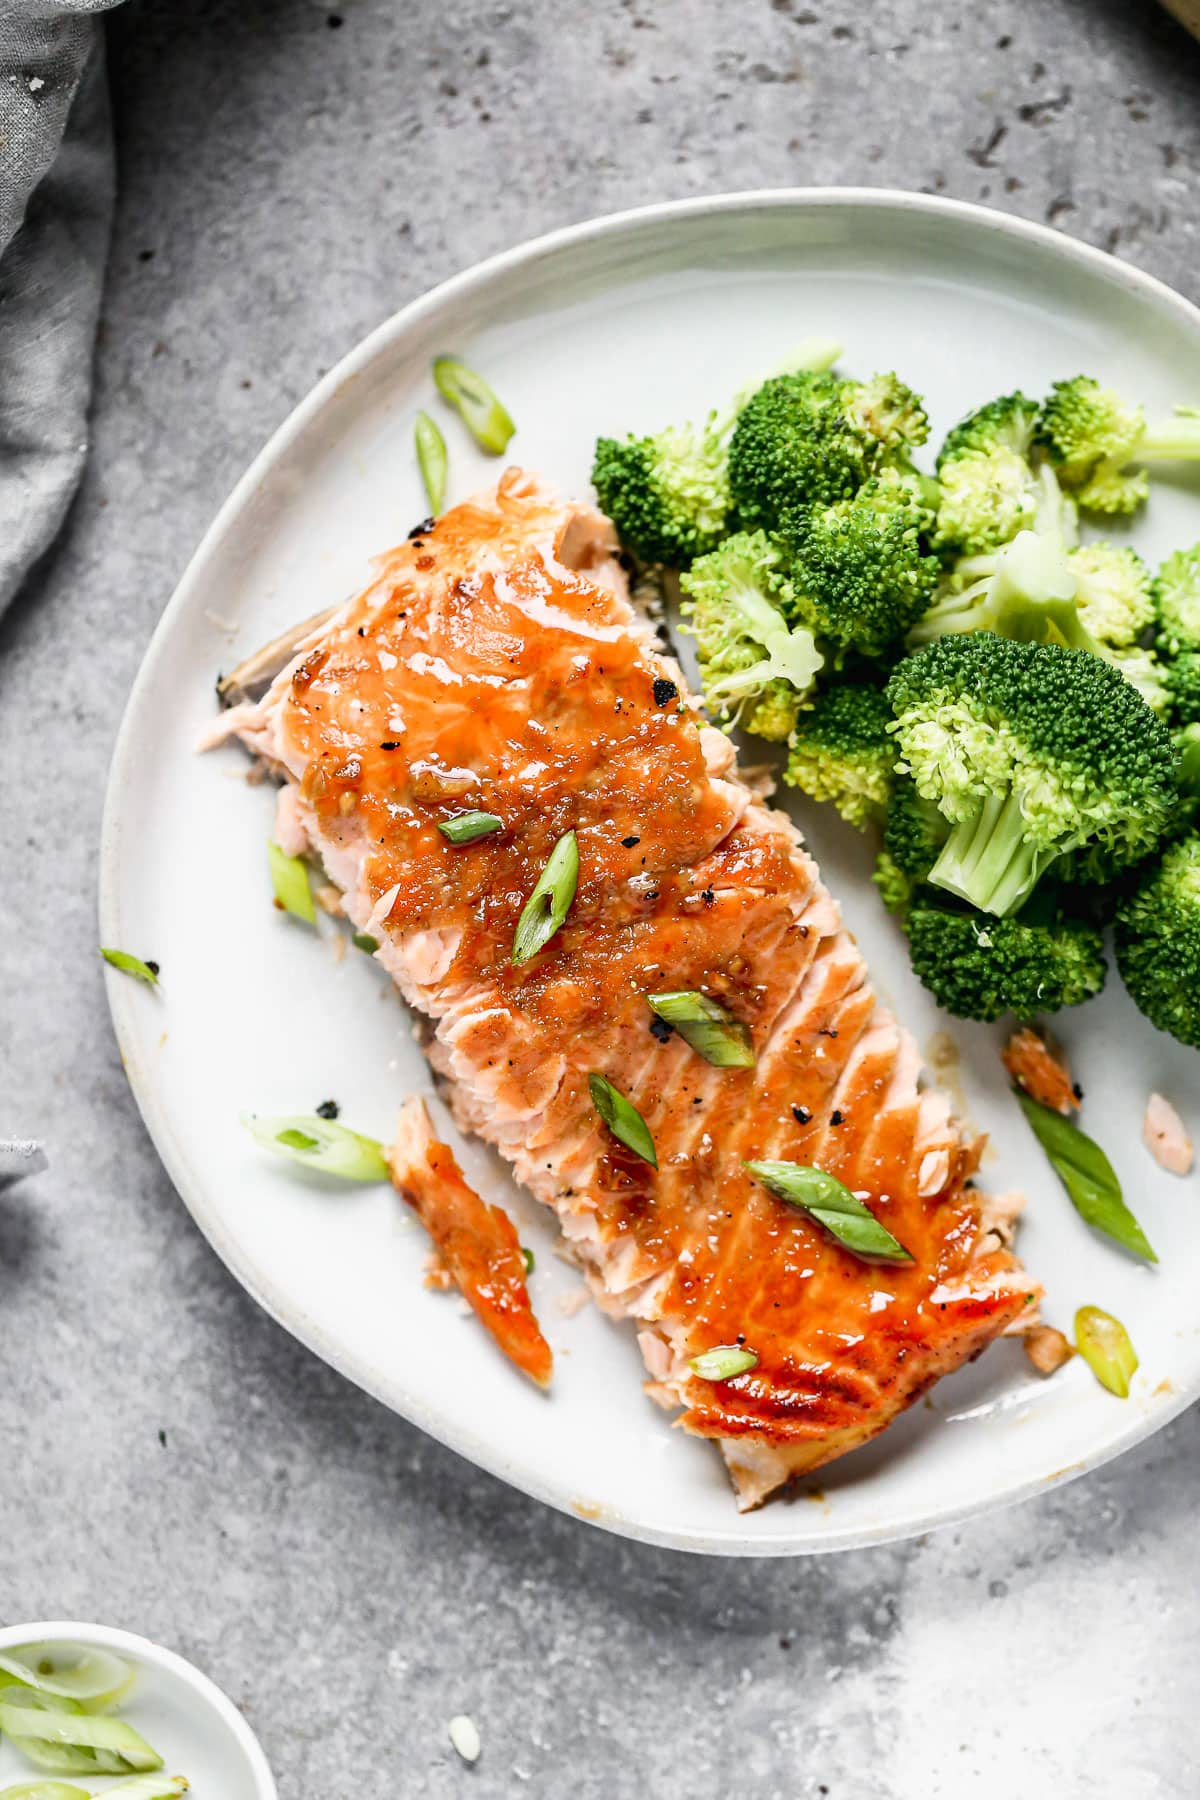 A plate of bourbon glazed salmon and broccoli